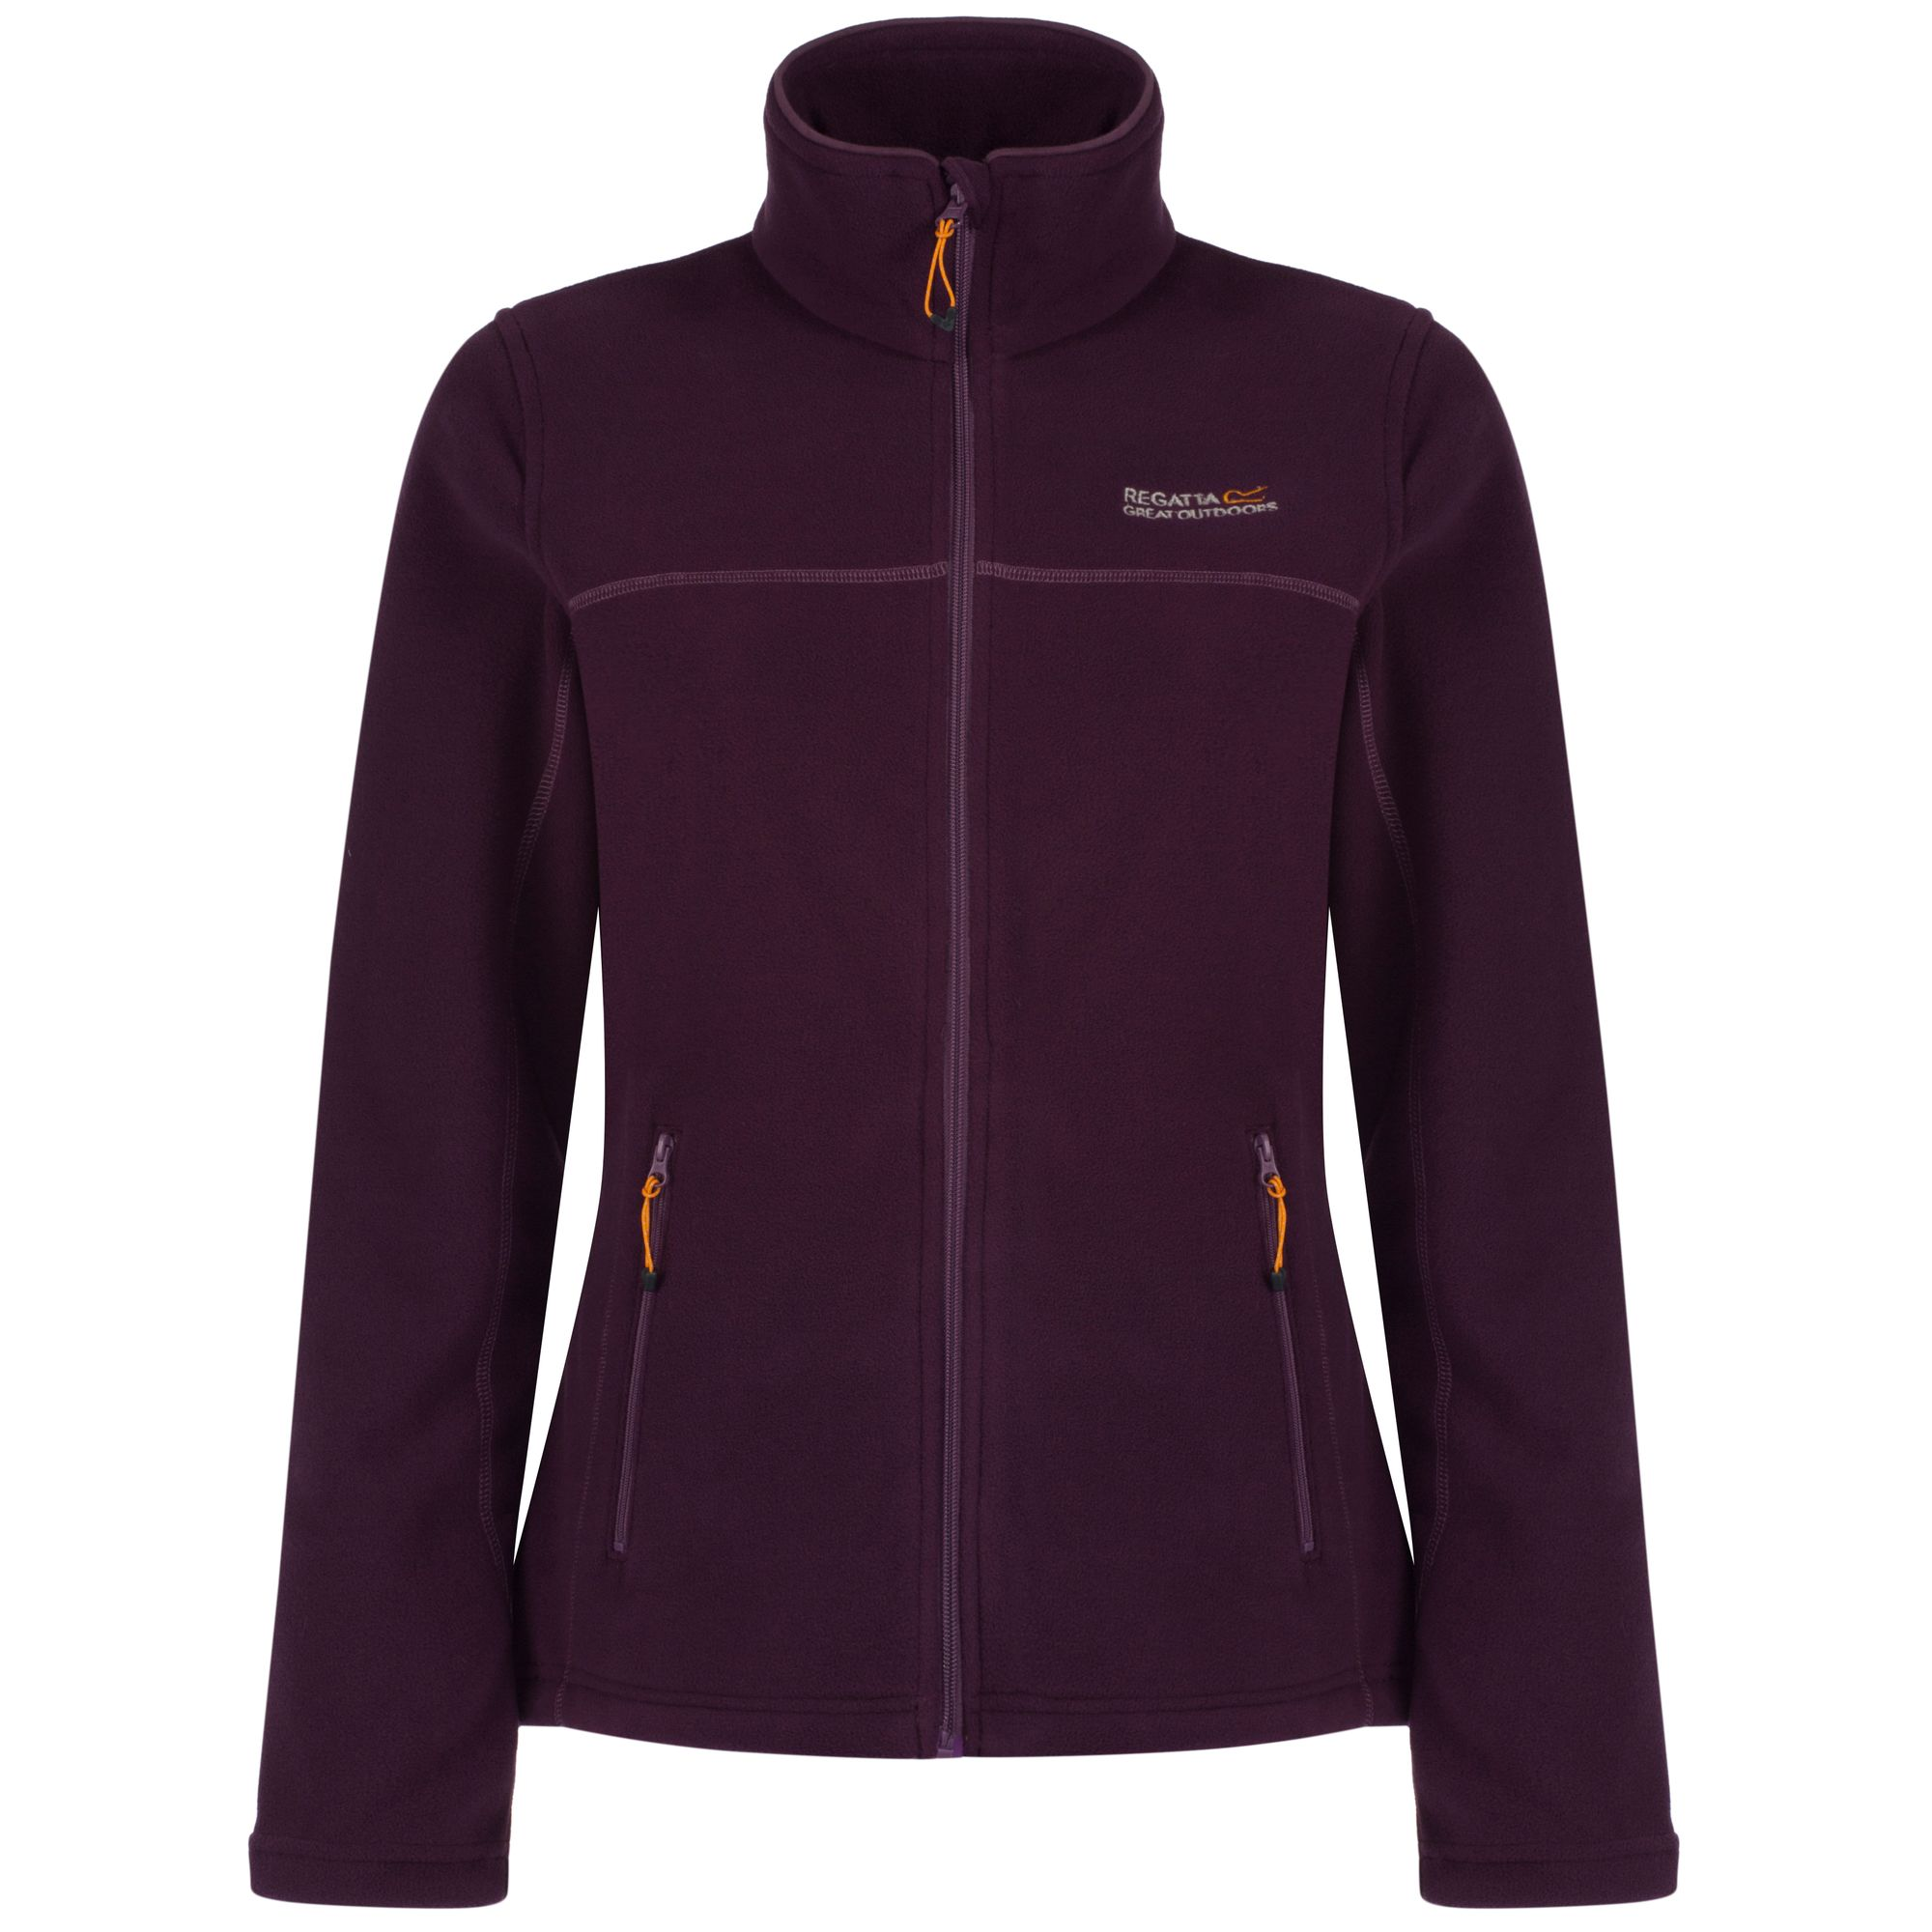 Womens outdoor jackets sale